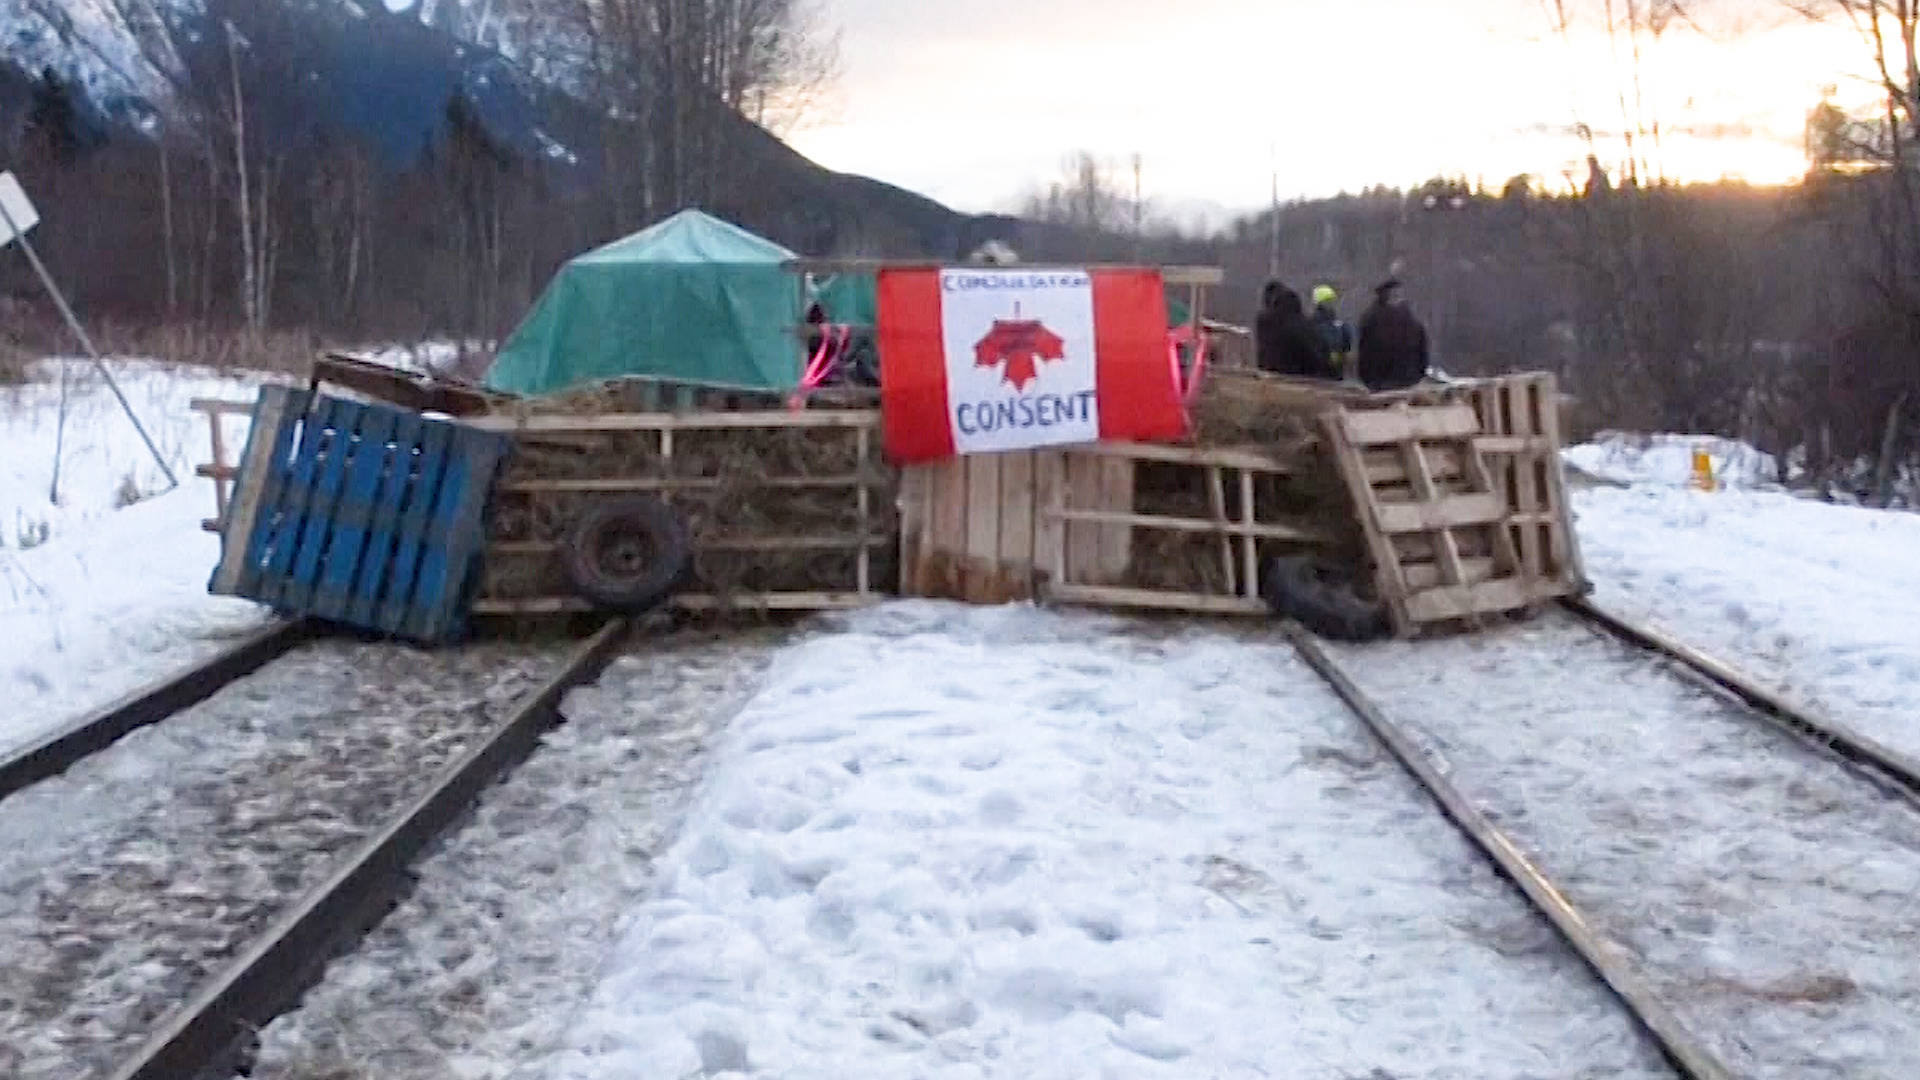 The Wet'suwet'en Fight Against New Pipeline Spreads Across Canada With Blockades & Occupations